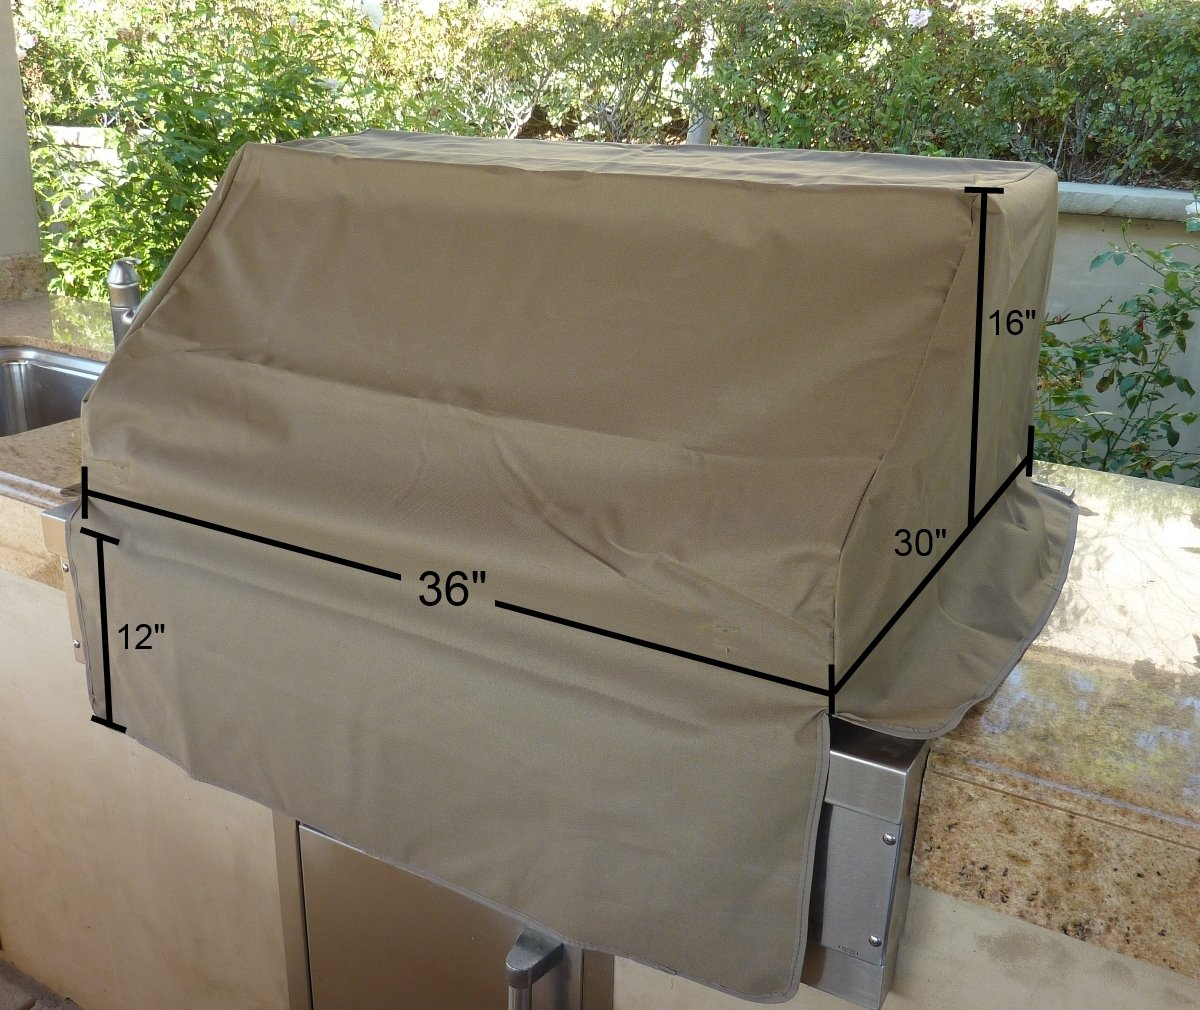 amazon com bbq built in grill cover up to 36